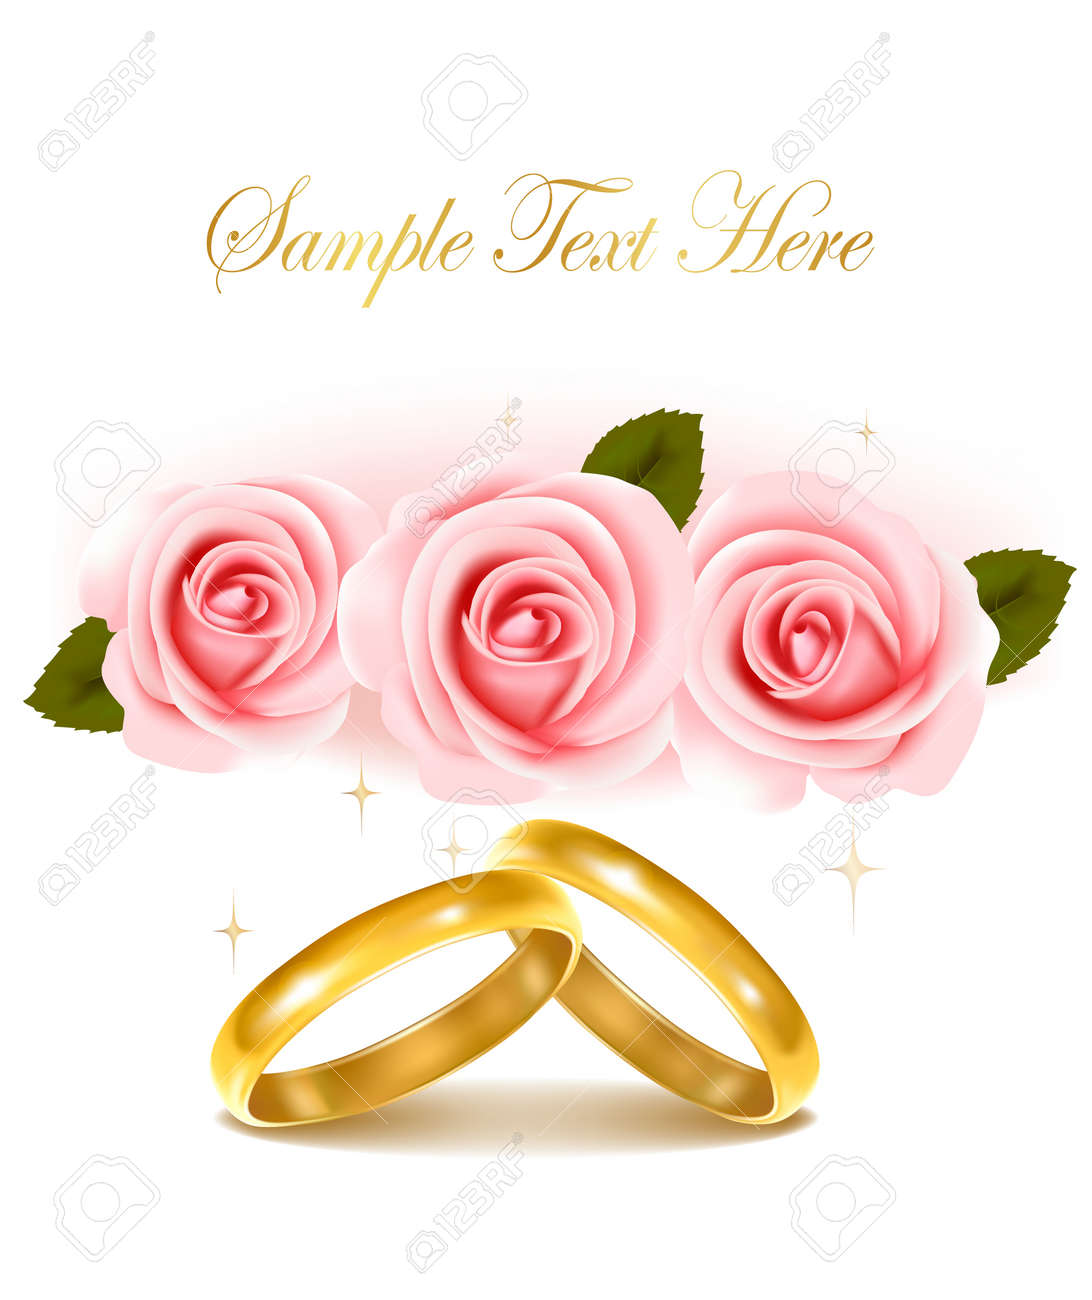 Background With Wedding Rings And Roses Bouquet. Vector Illustration ...